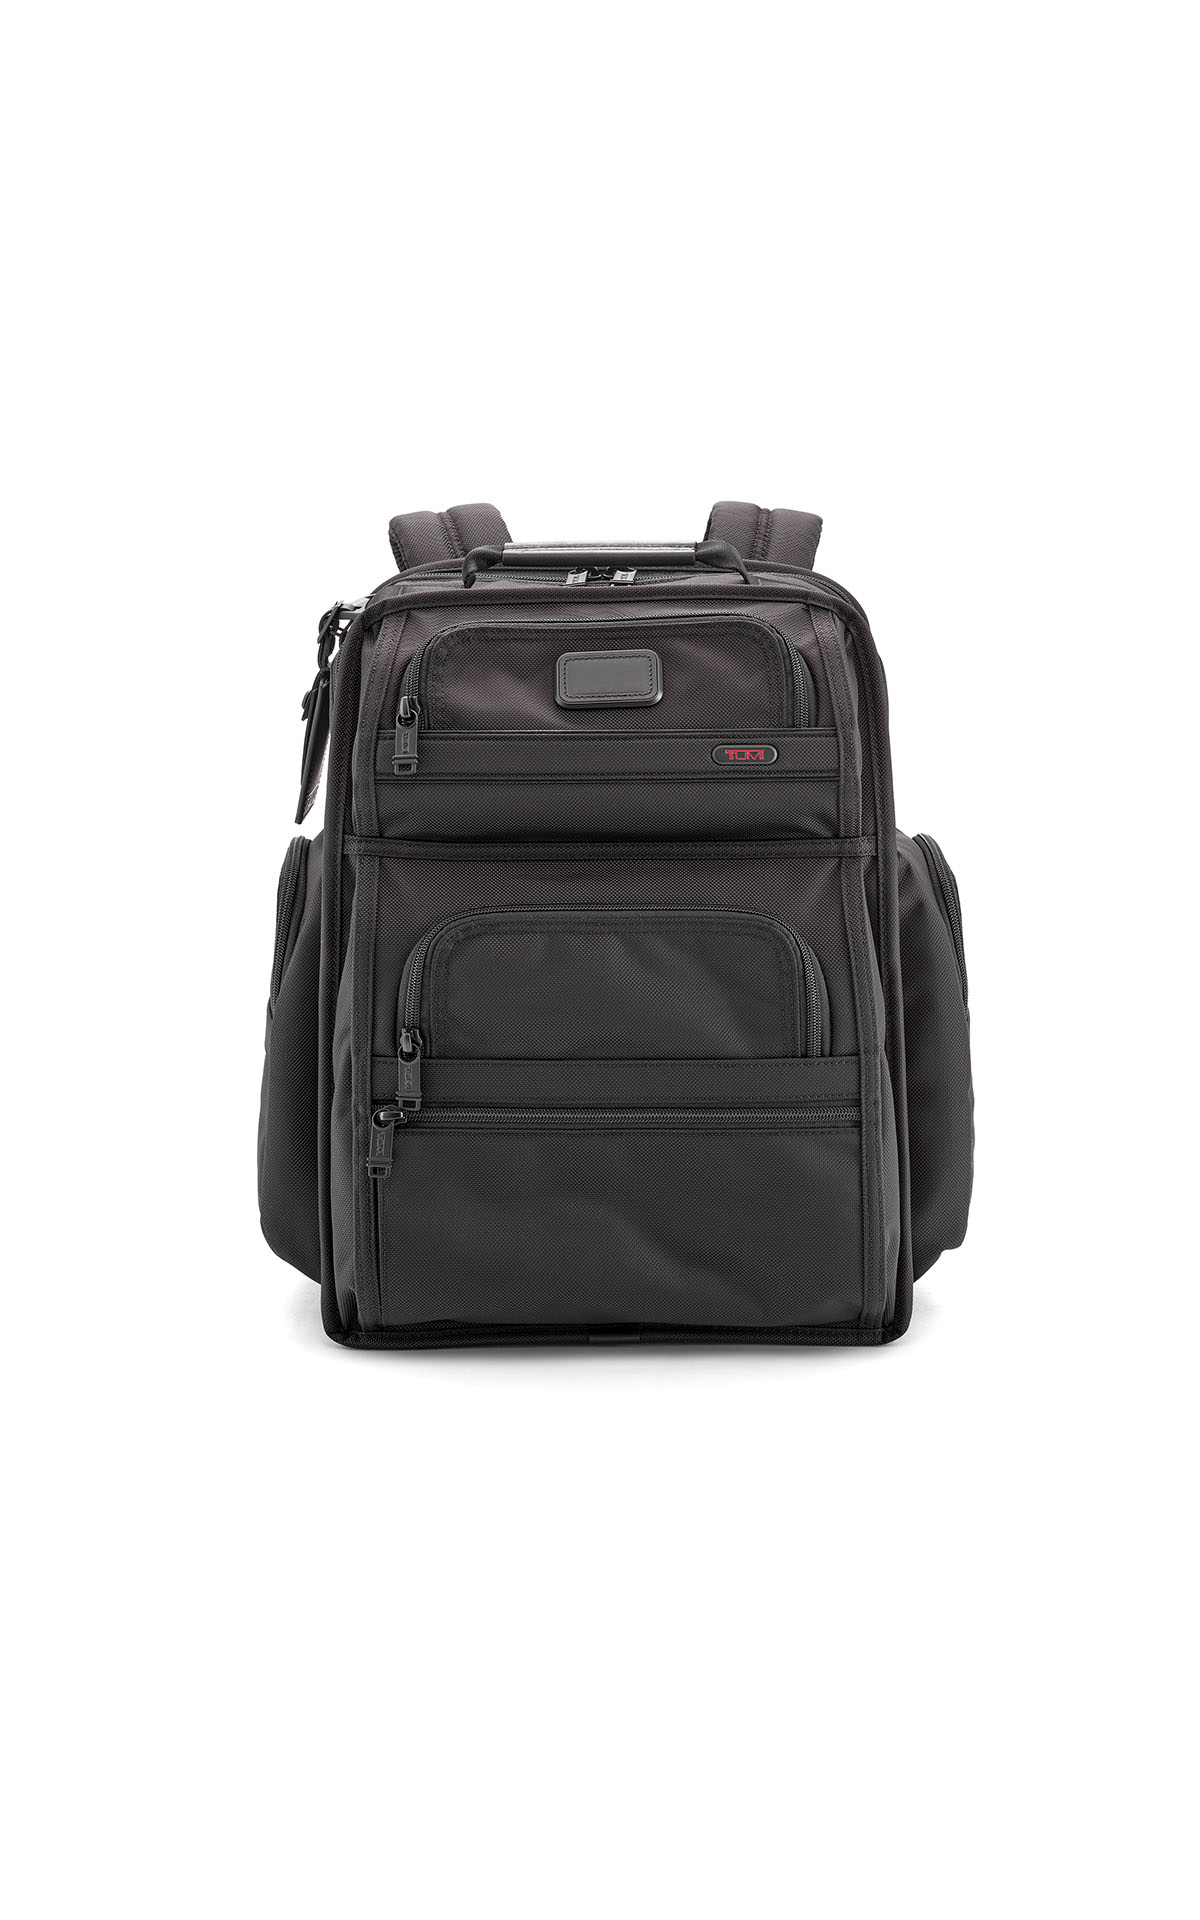 Tumi Brief Pack at The Bicester Village Shopping Collection